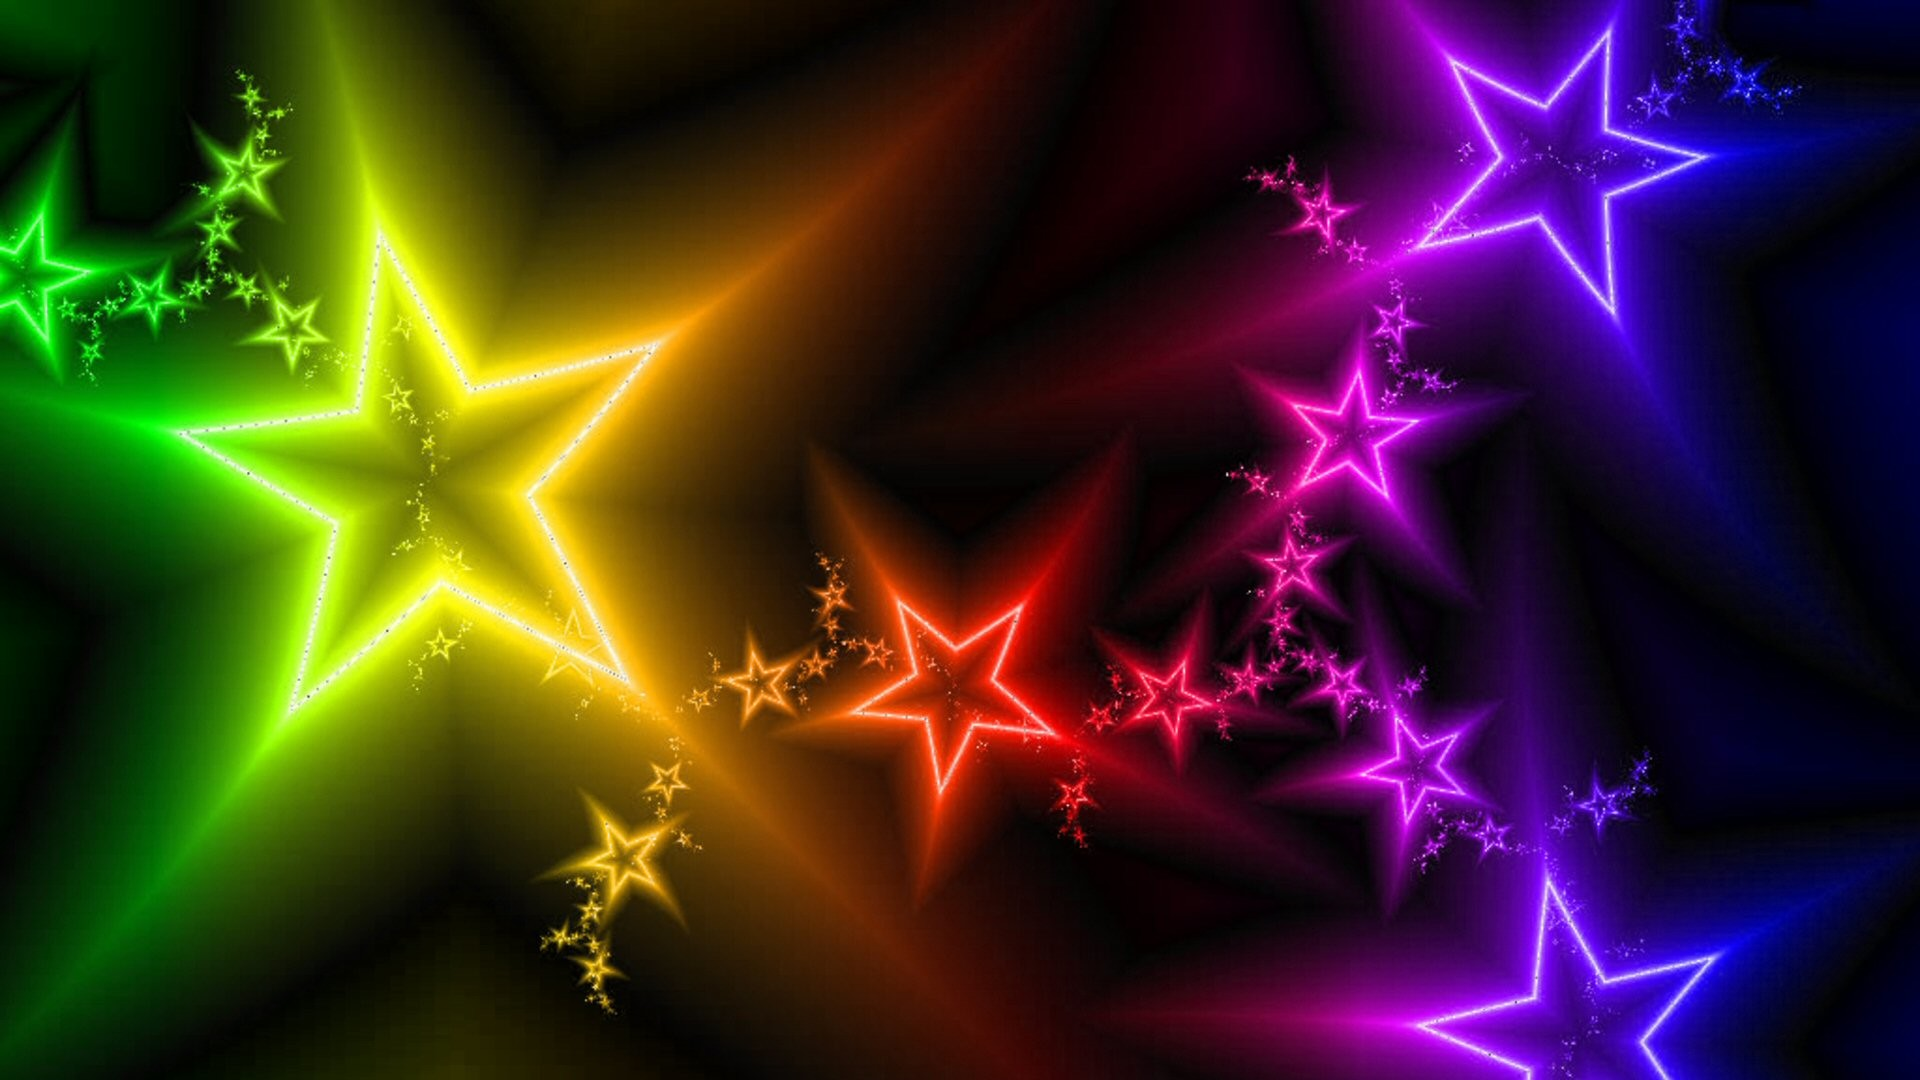 1920x1080 Cool Backgrounds Hd Stars Free cool backgrounds full hd